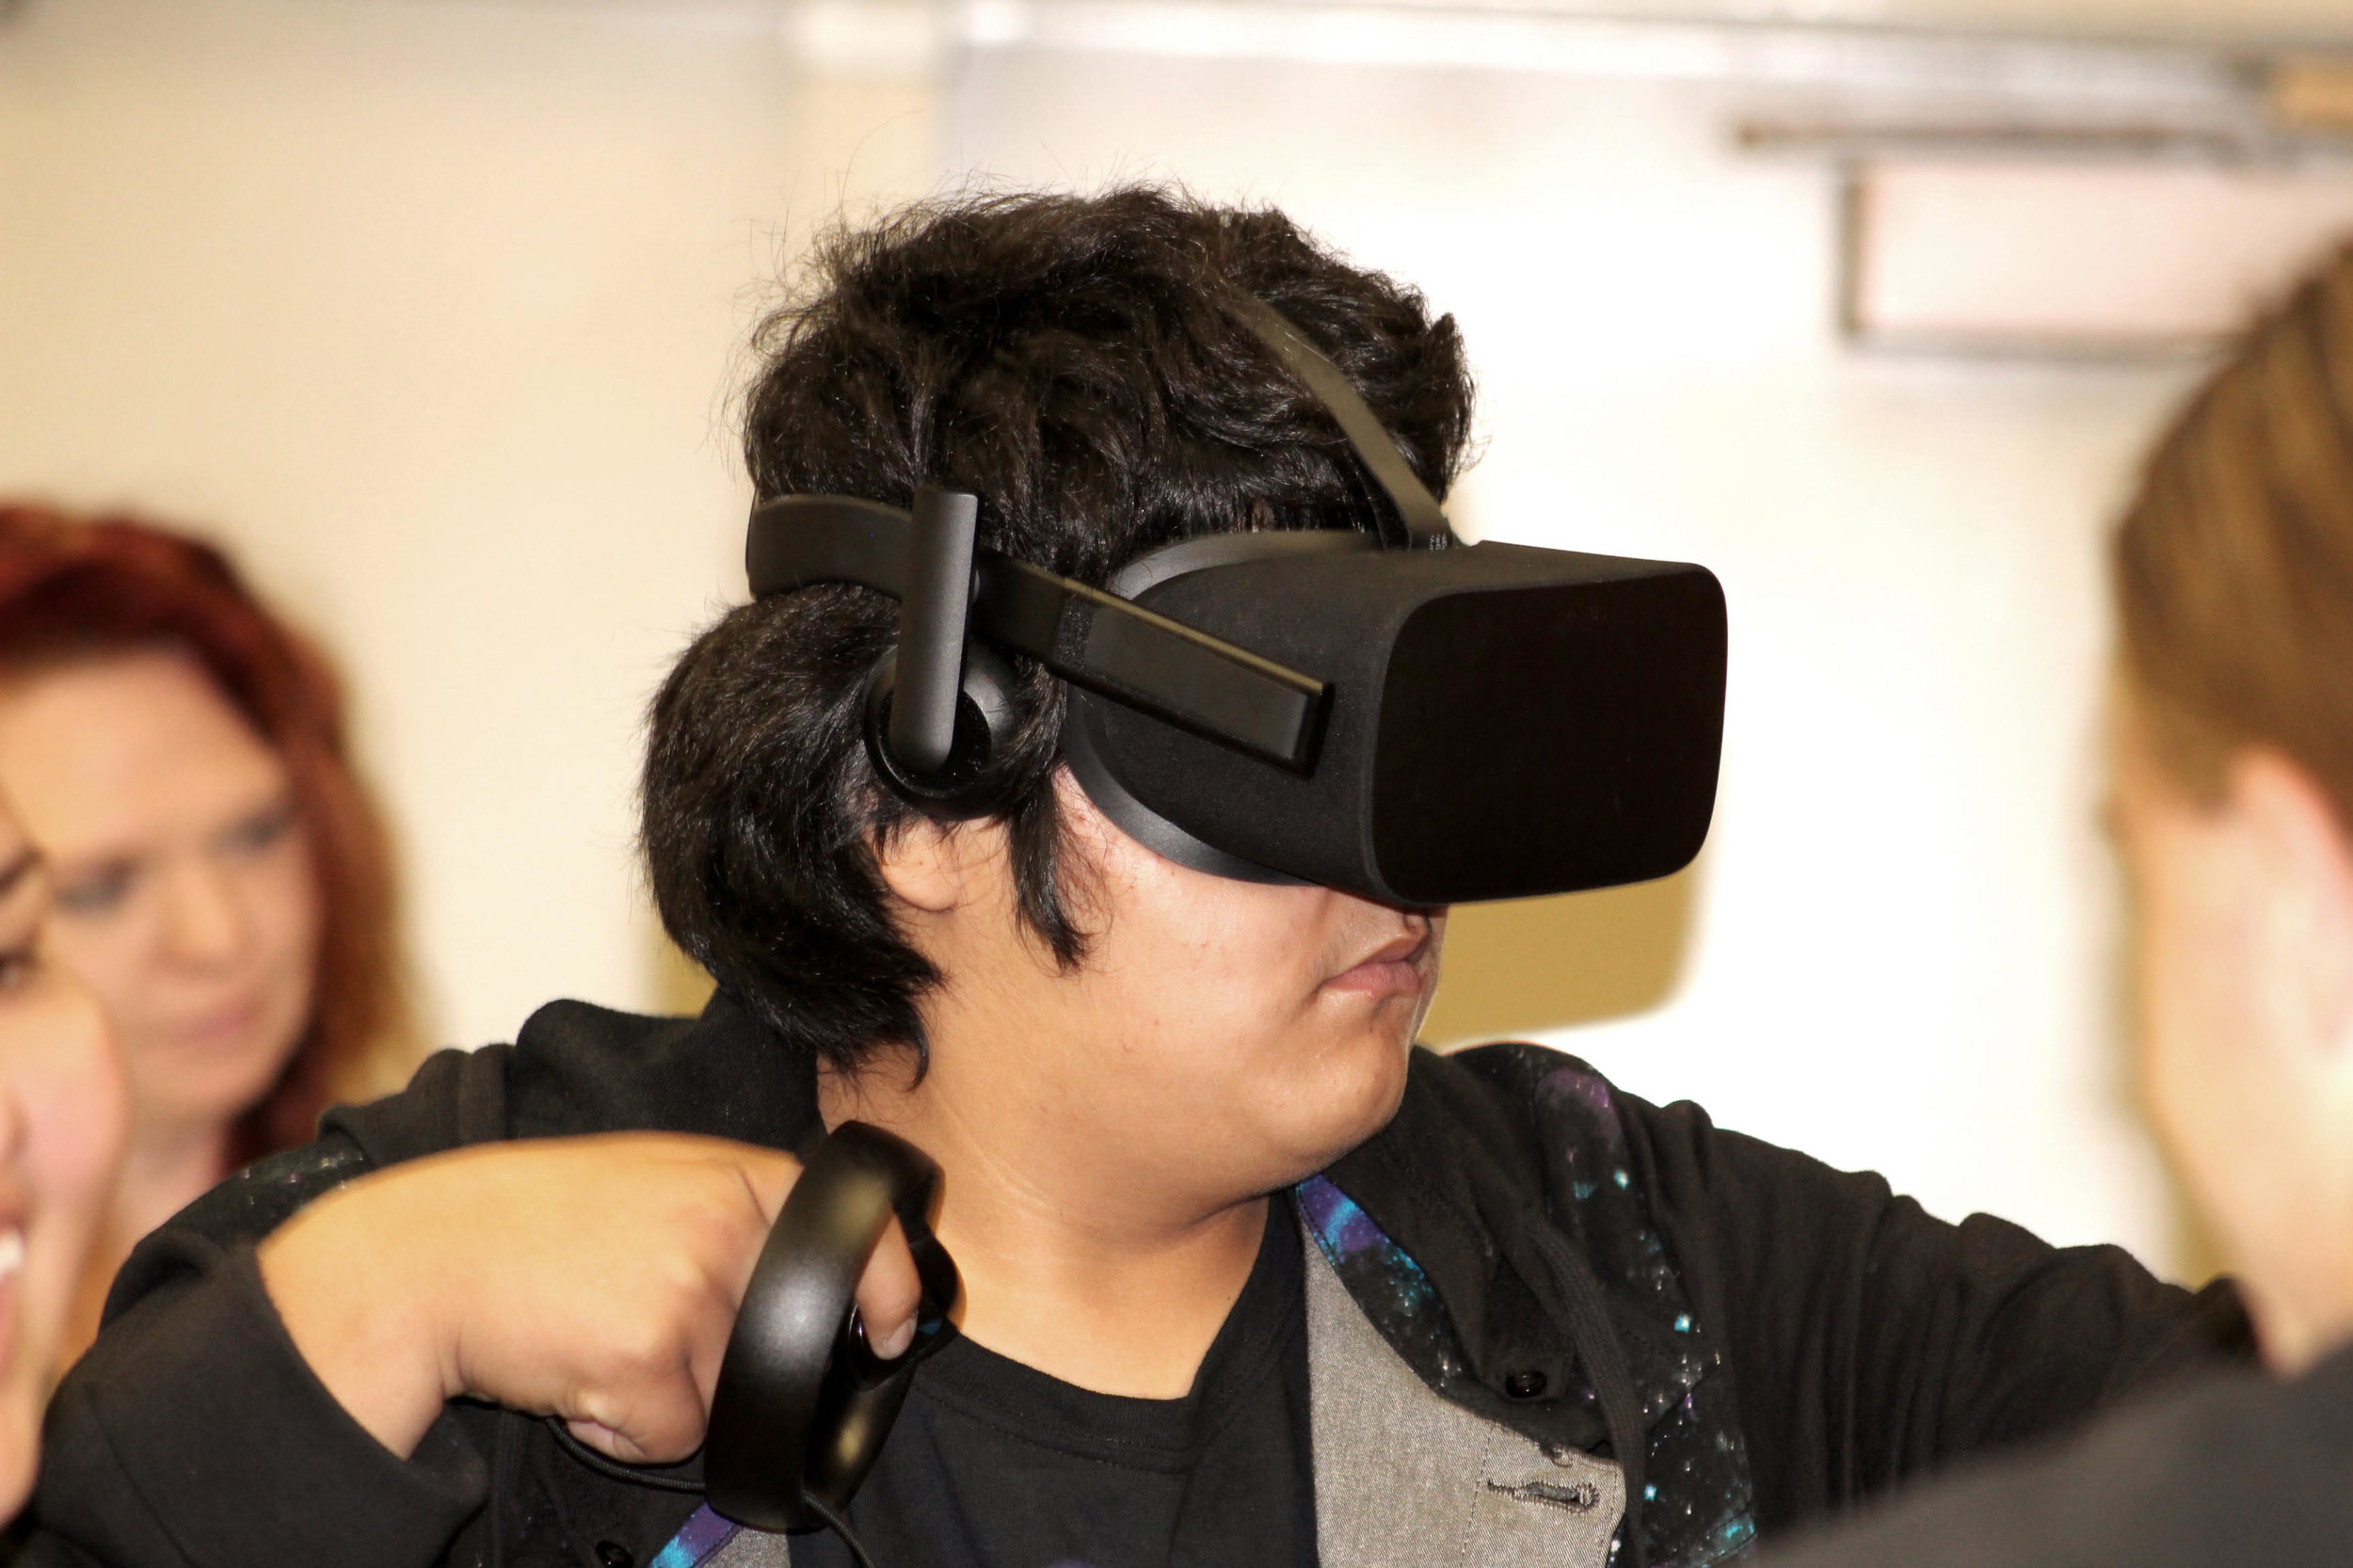 Whitehorse Student Kyle tries out VR Technology.